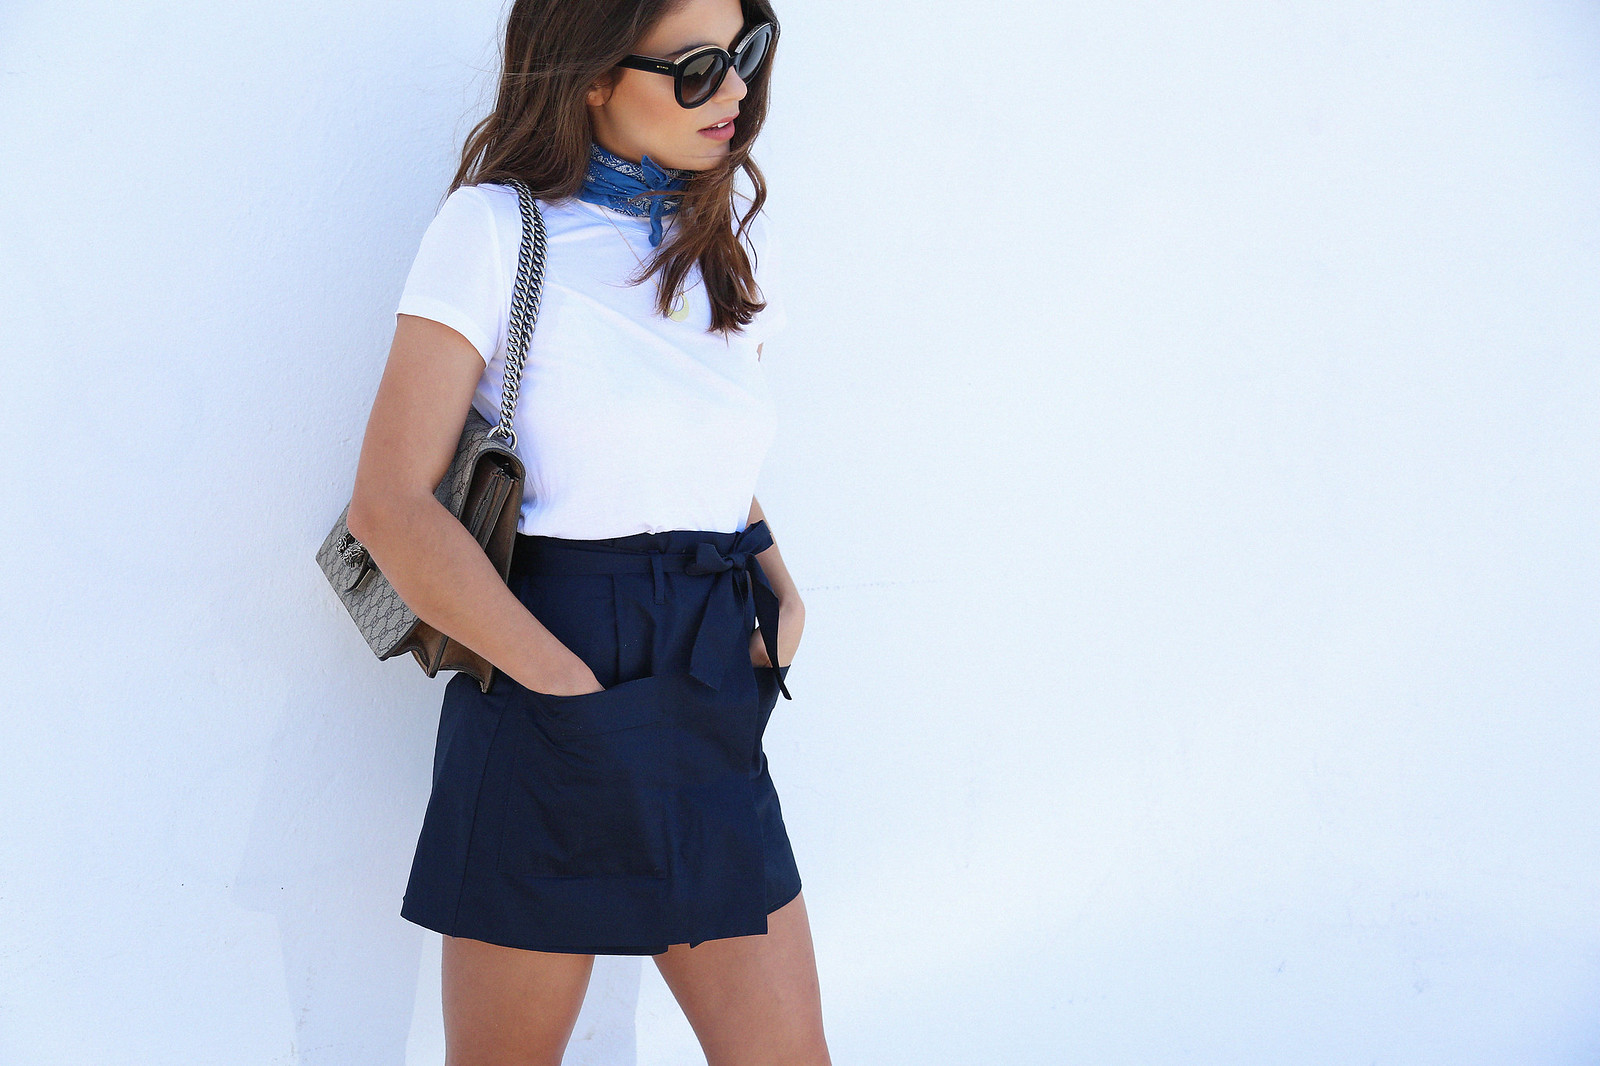 jessie chanes seams for a desire blue skort white tshirt wooden wedges sandals-4